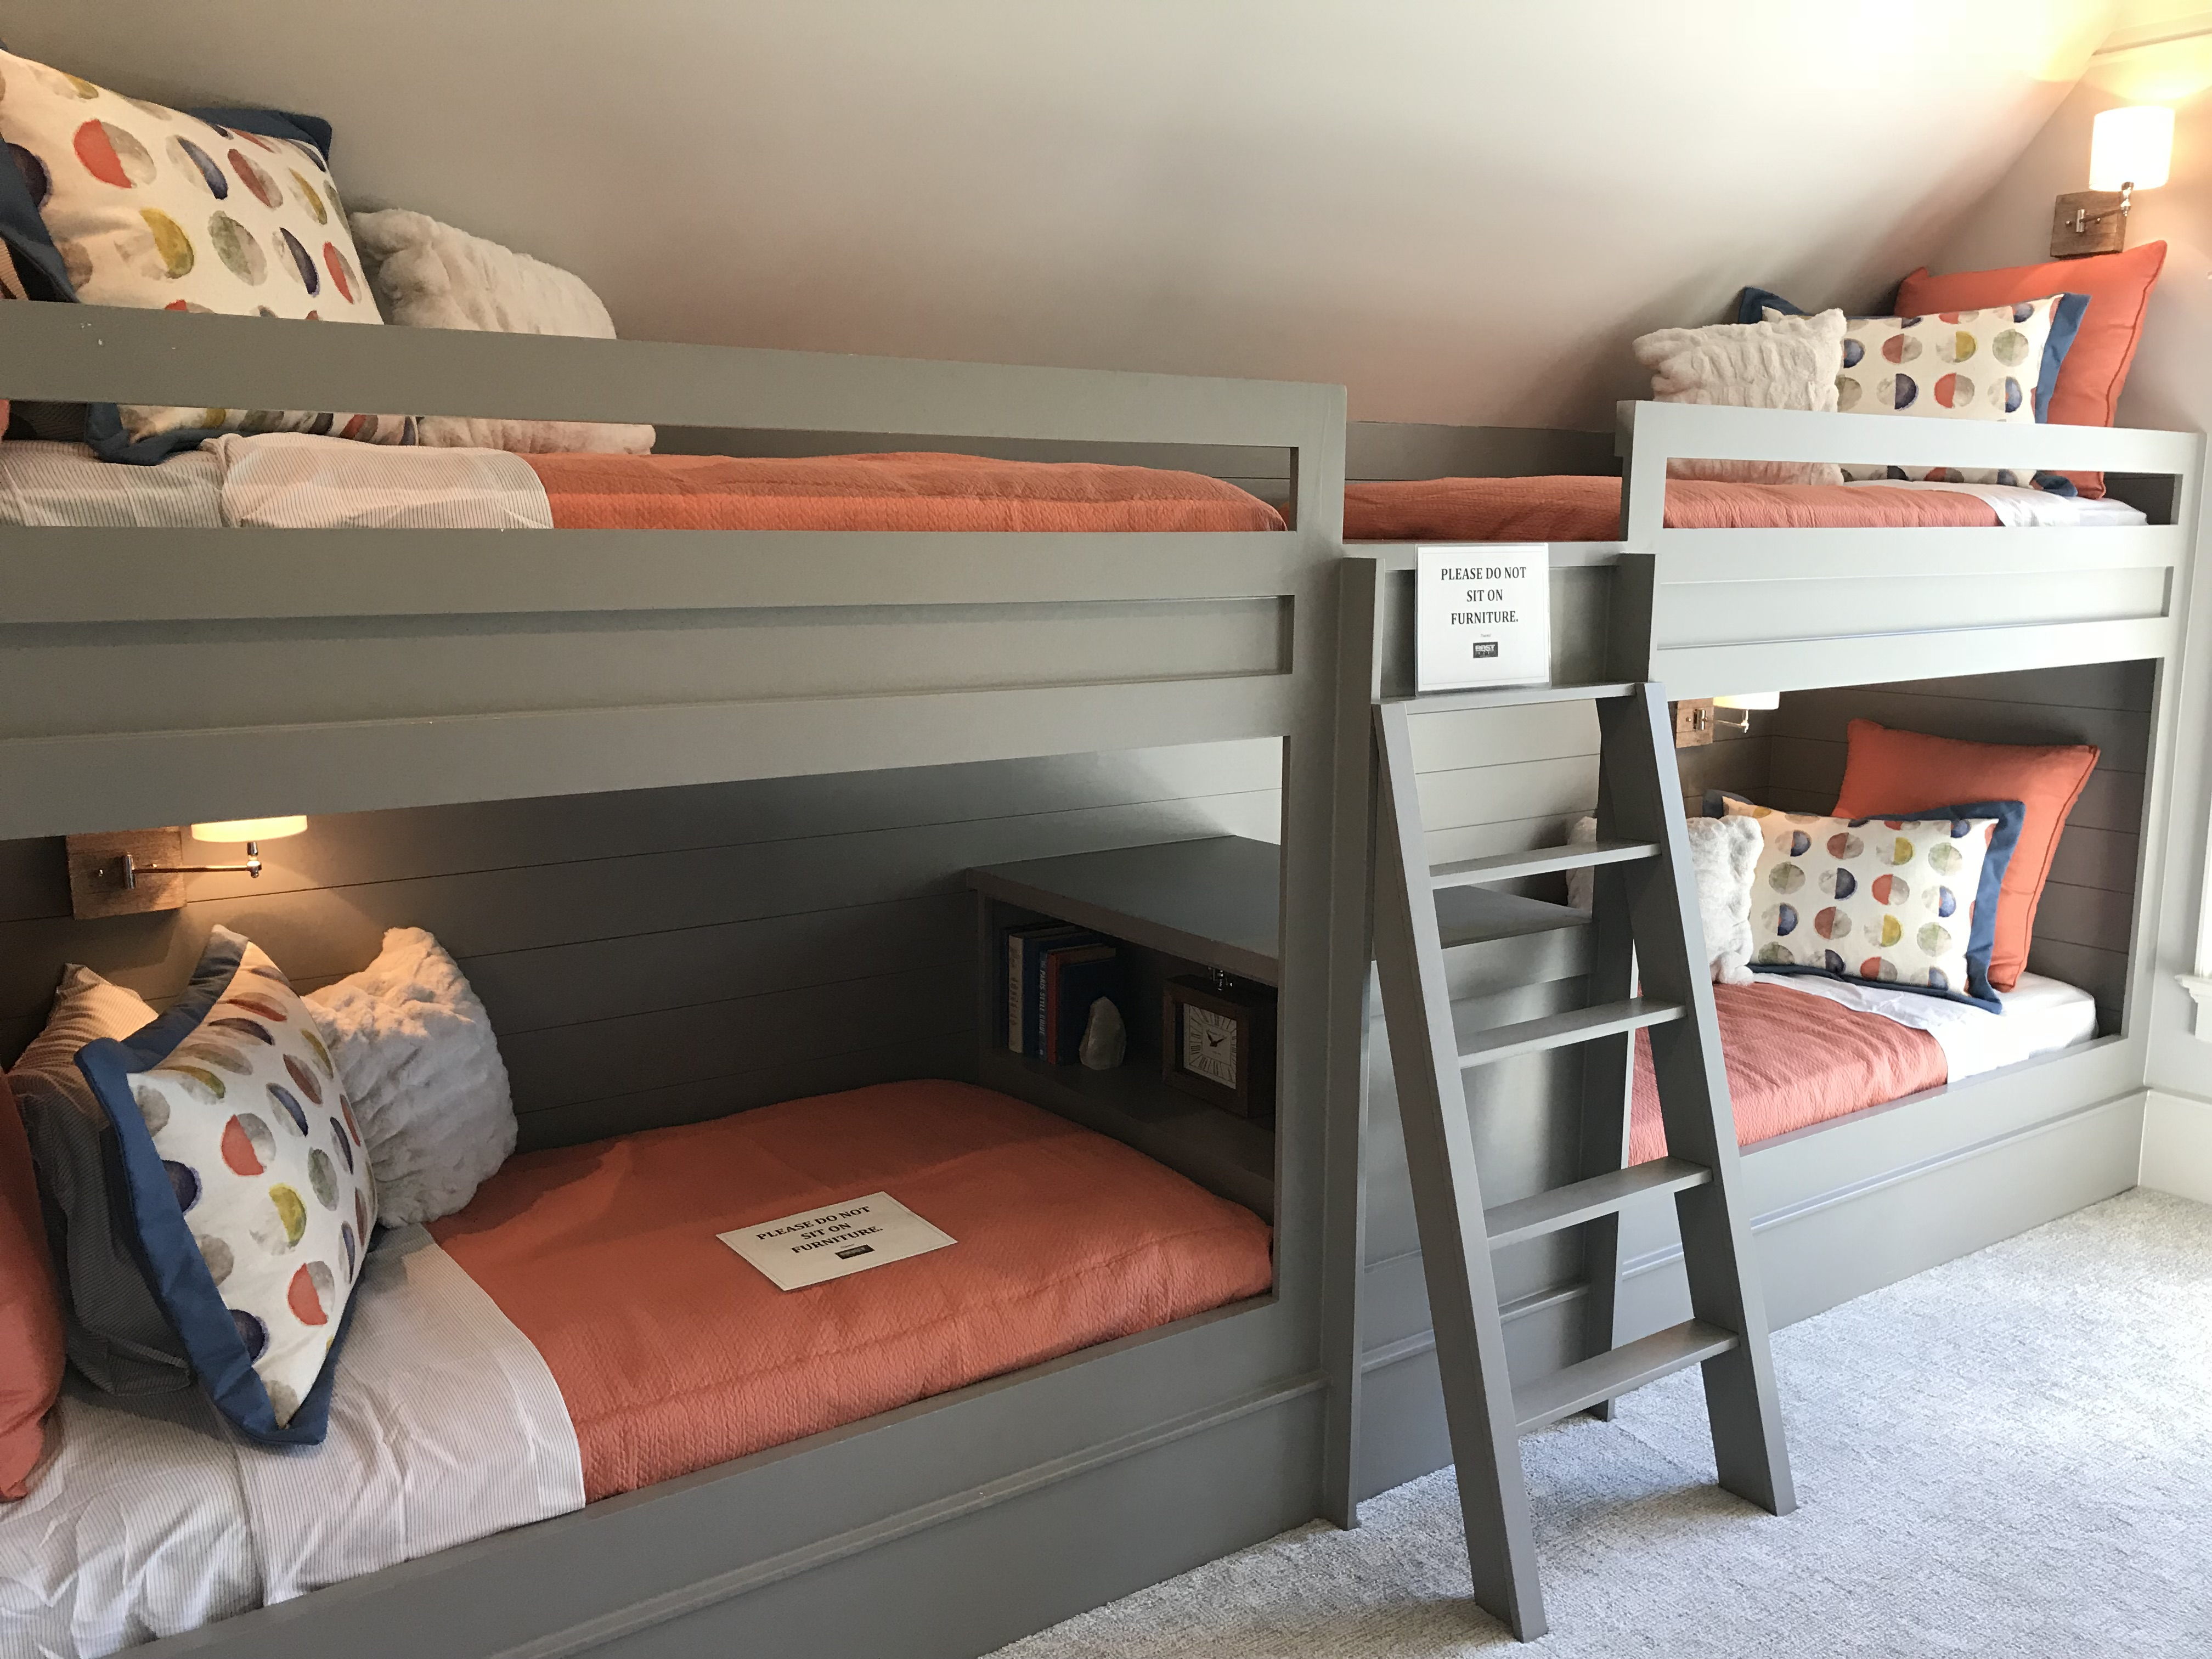 <div class='meta'><div class='origin-logo' data-origin='none'></div><span class='caption-text' data-credit='WTVD Photo/Shawn Replogle'>Custom bunk beds - 5105 Avalaire Oaks Drive, Raleigh, NC - $3.2 million by Bost Custom Homes</span></div>